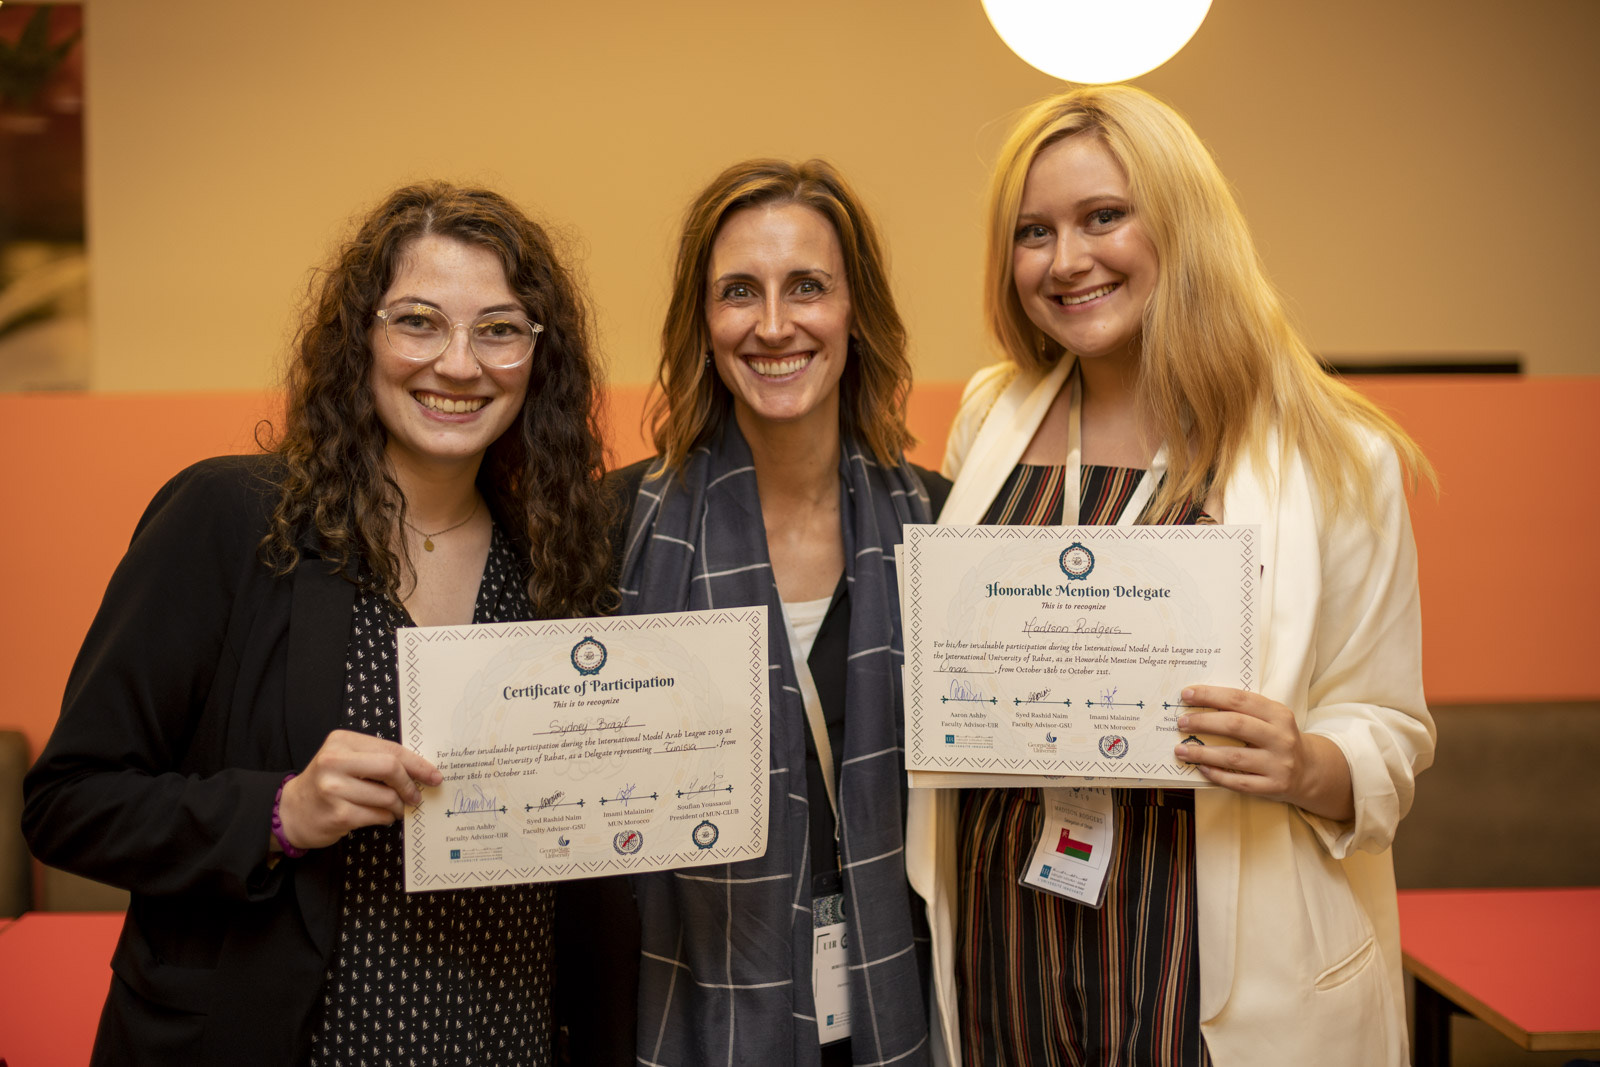 Model Arab League Advisor Rebecca Glazier (middle) poses with Sydney Brazil (left) and Madison Rogers (right), who won awards at the International Model Arab League in Morocco.